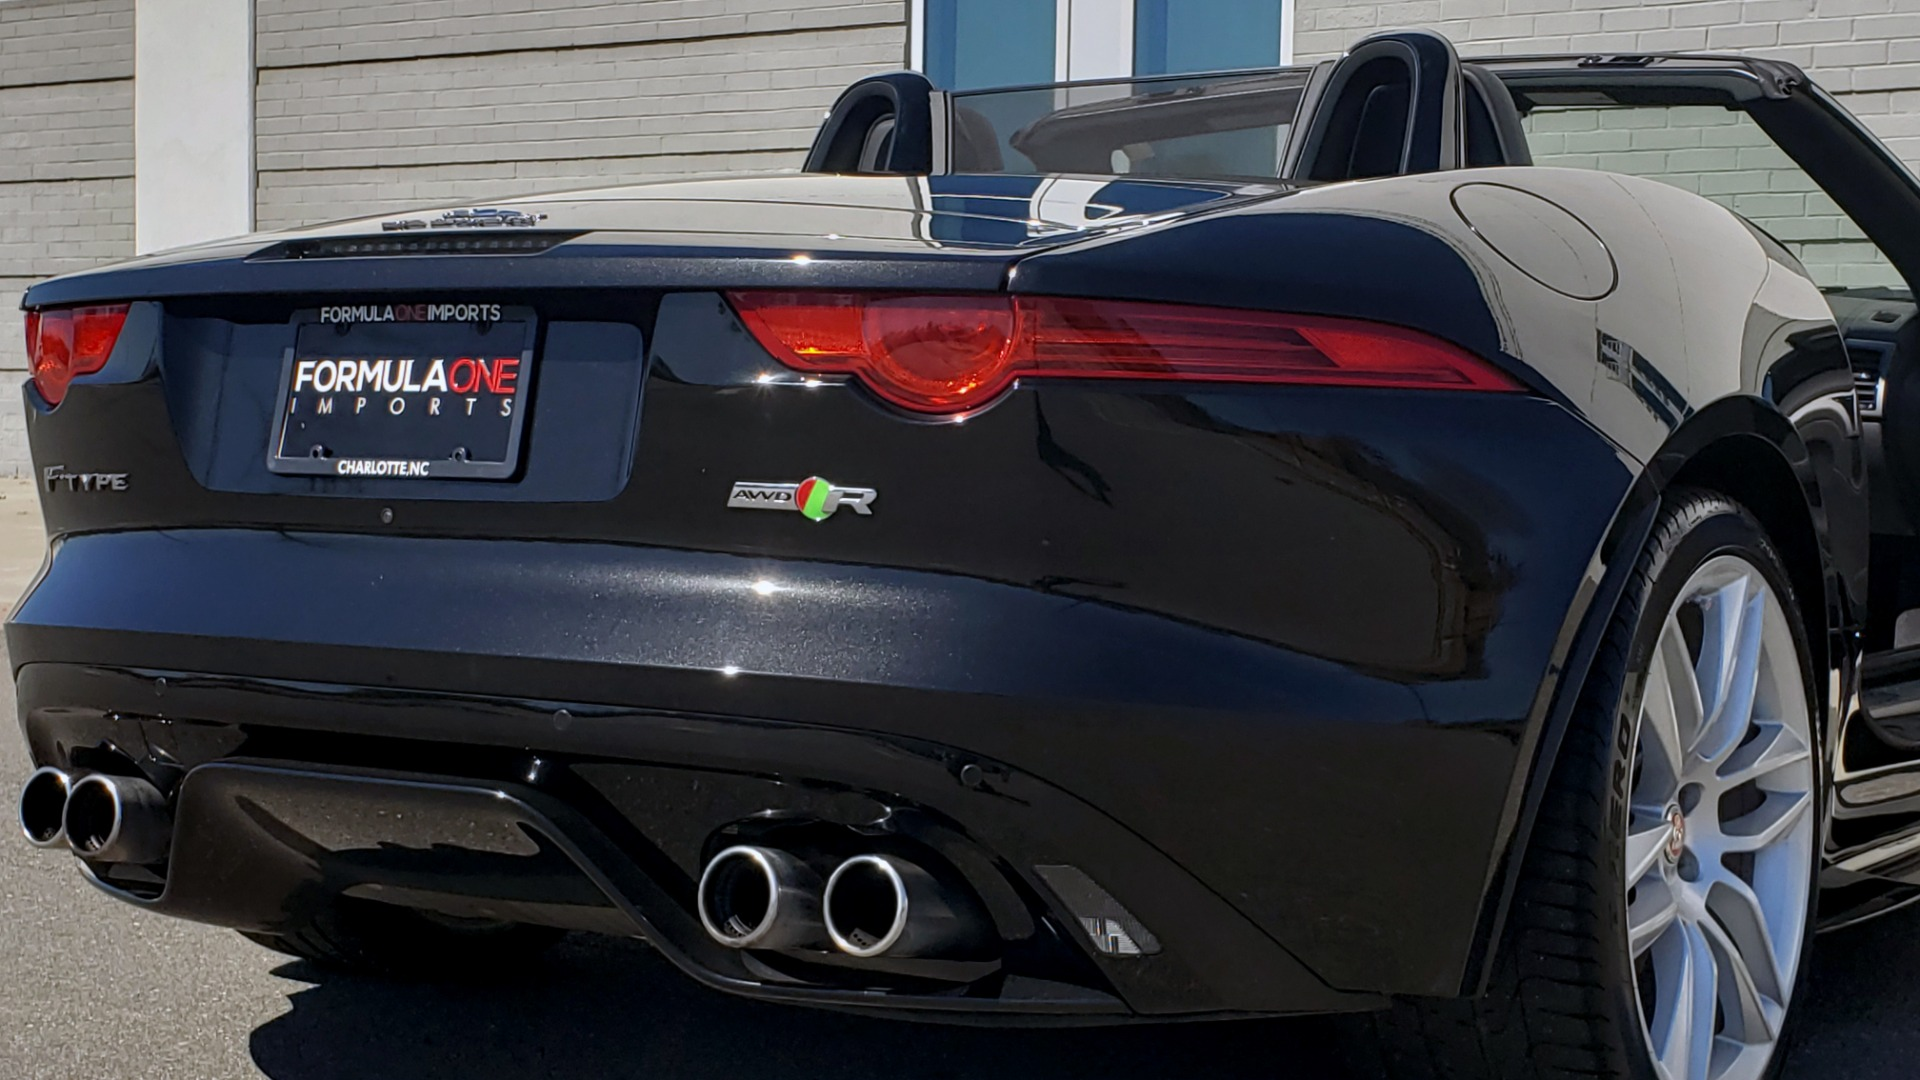 Used 2016 Jaguar F-TYPE R CONVERTIBLE / SC 5.0L 550HP / VISION PACK 3 / BSM / REARVIEW for sale $63,000 at Formula Imports in Charlotte NC 28227 77